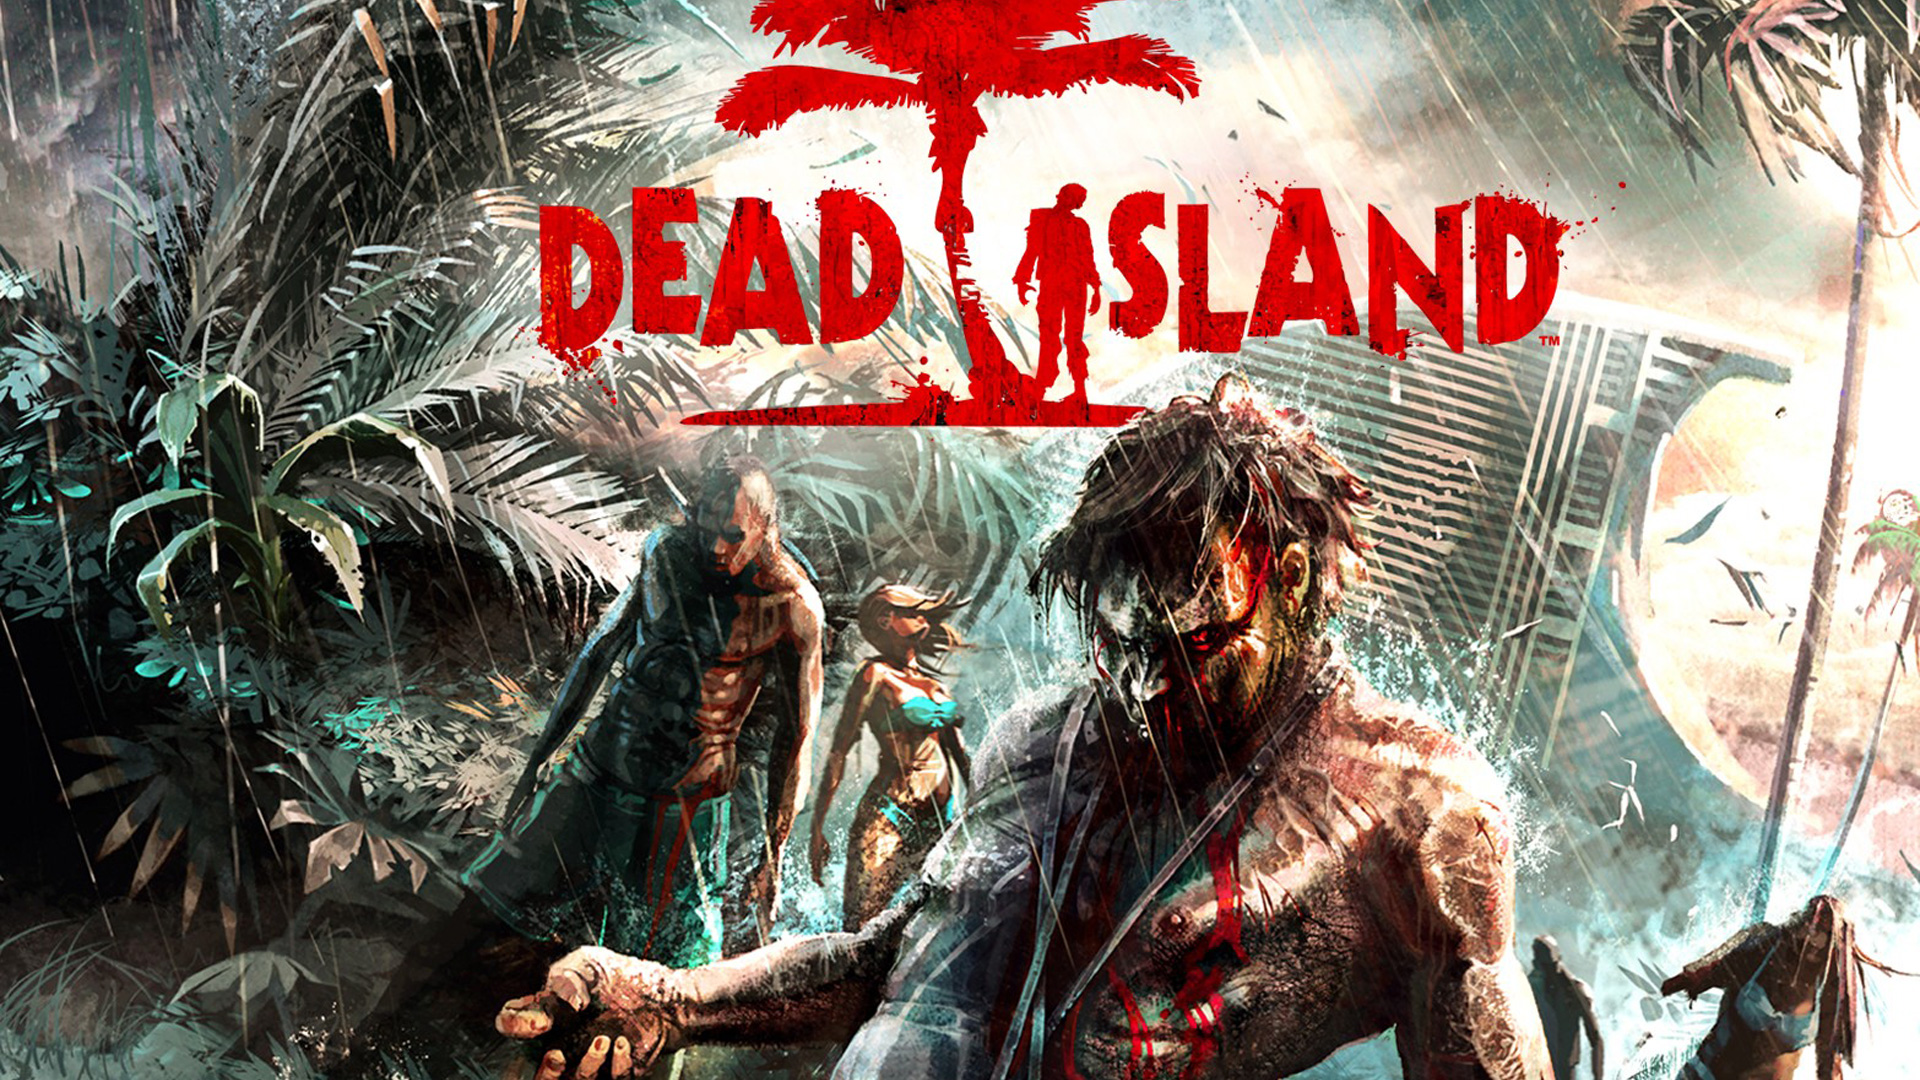 It seems like Dead Island 2's release is still nowhere close. Even though the game's announcement was made at E3 2014 and its official trailer was also launched, there have been so many hiccups along the way that fans are not even sure if it will see the light of the day.